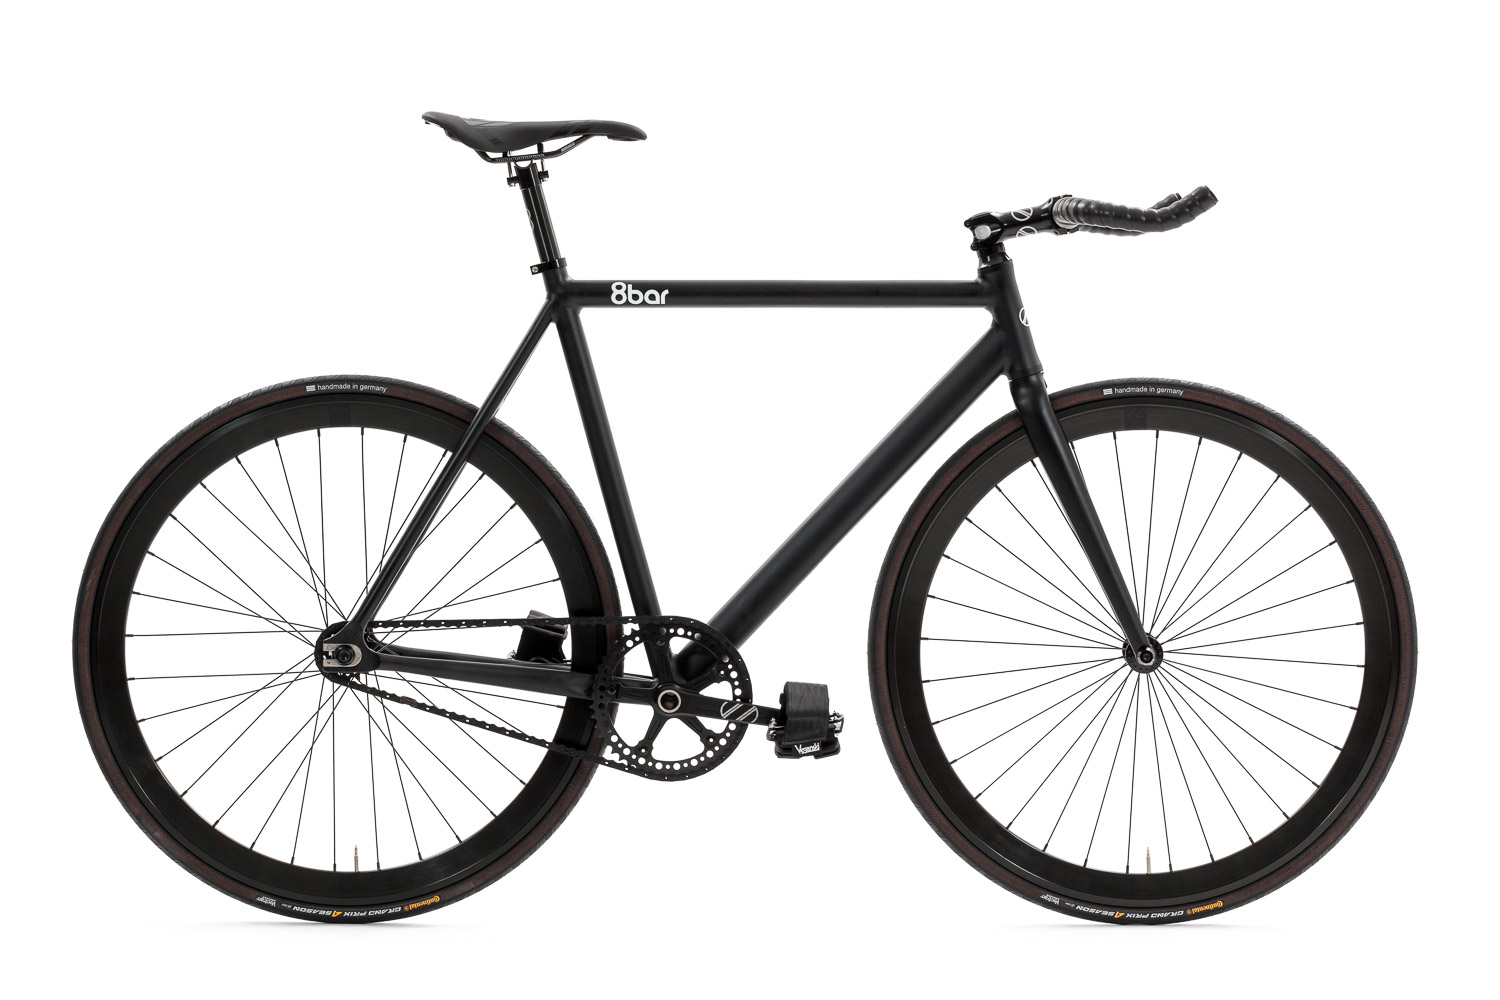 8bar-fhain-pro-black-bullhorn-fixie-fixed-gear-1